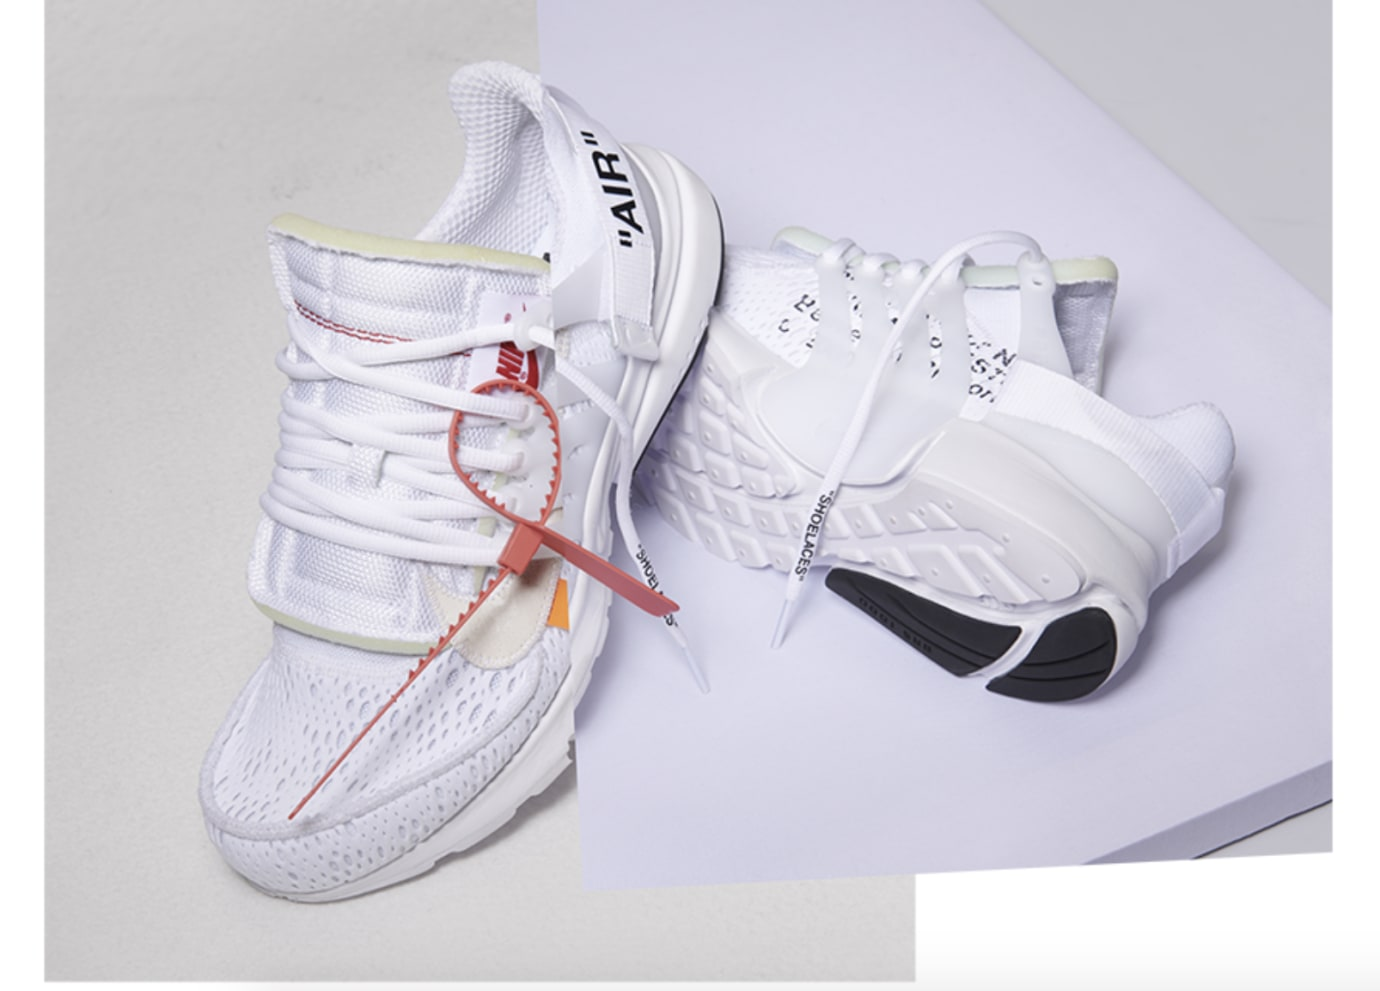 Off-White x Nike Air Presto 'White' AA3830-100